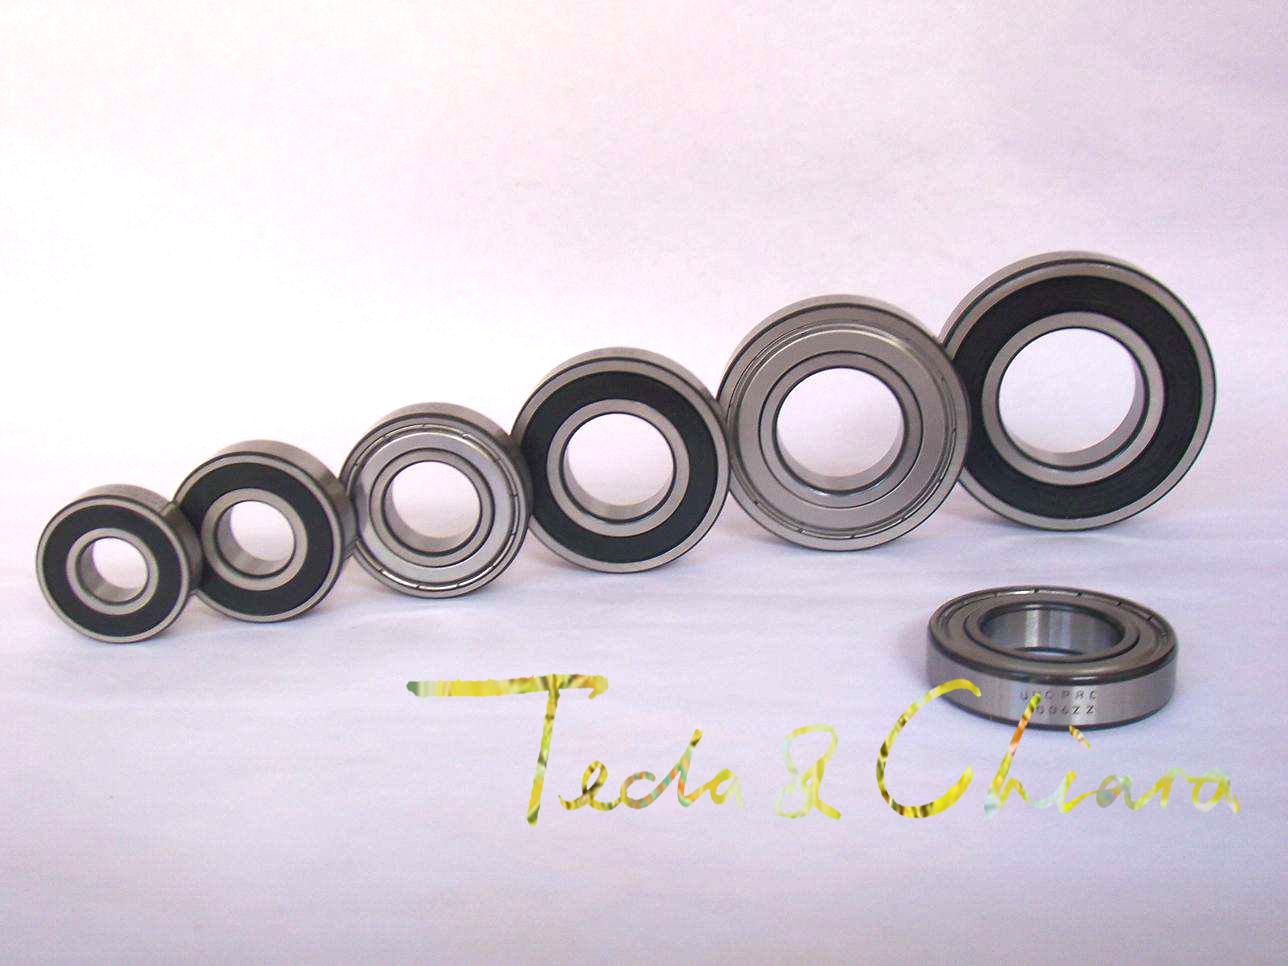 6701 6701ZZ 6701RS 6701-2Z 6701Z 6701-2RS ZZ RS RZ 2RZ Deep Groove Ball Bearings 12 X 18 X 4mm